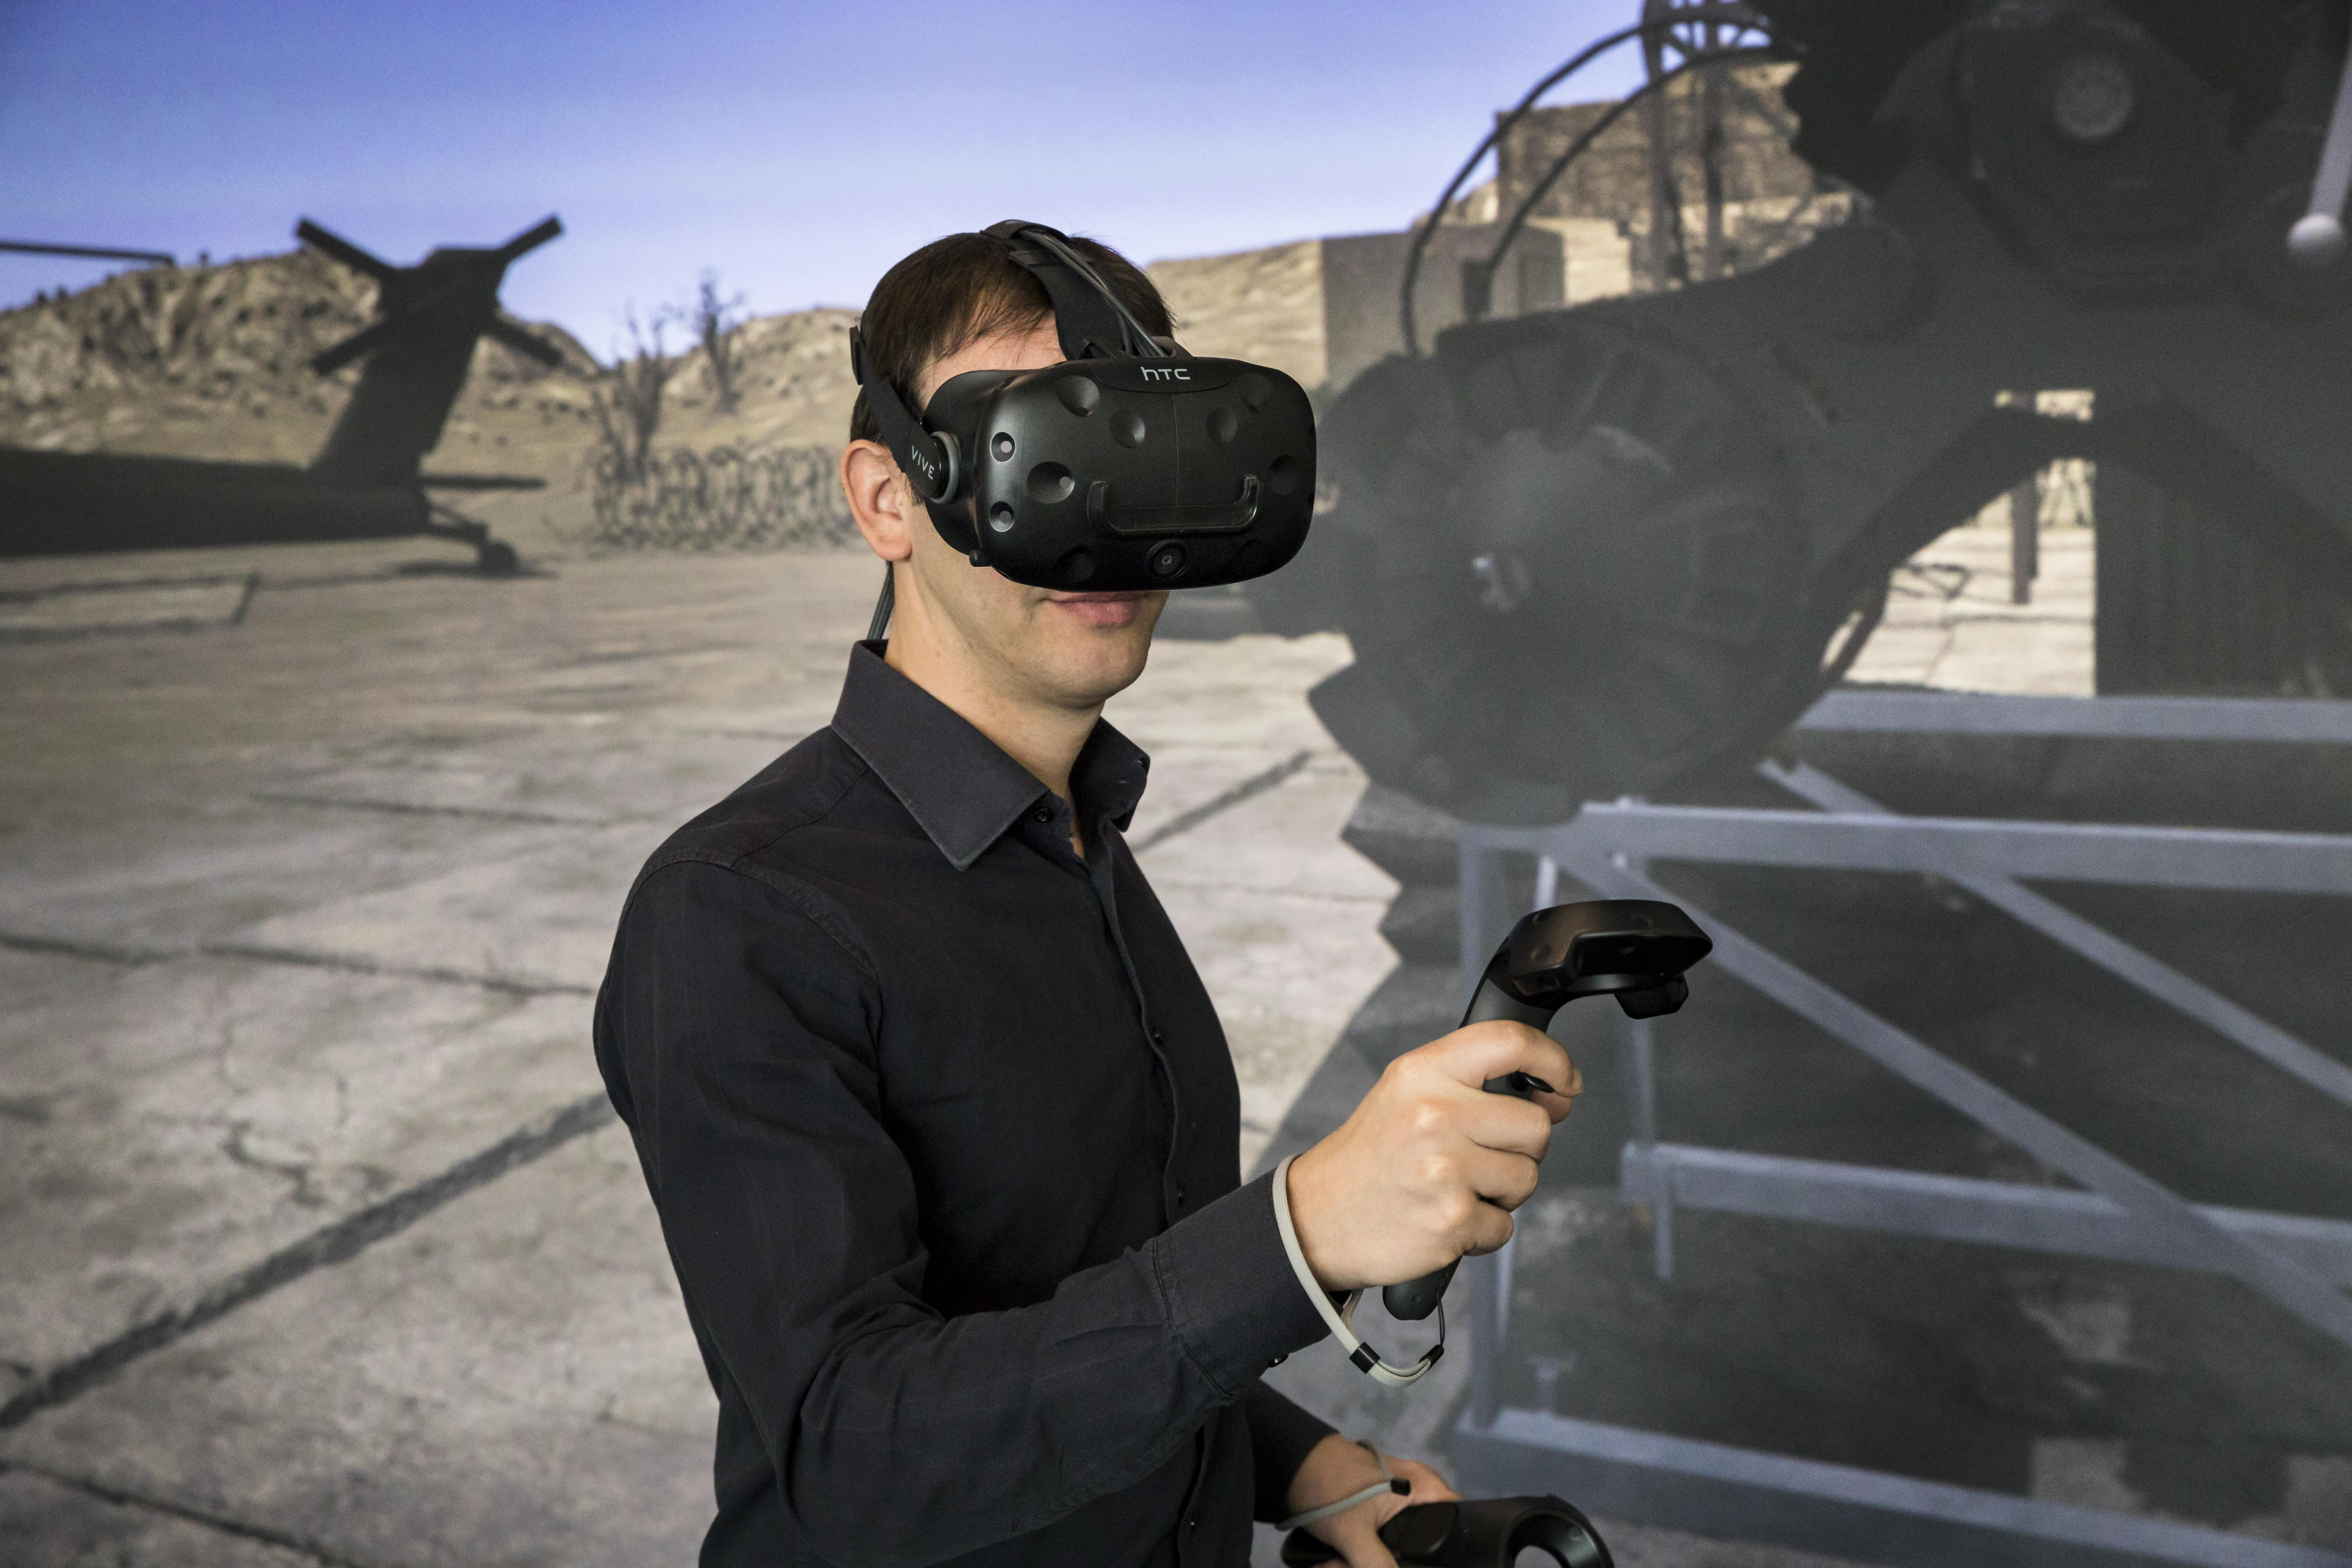 In virtual reality, dangerous situations can be trained realistically and without risk.